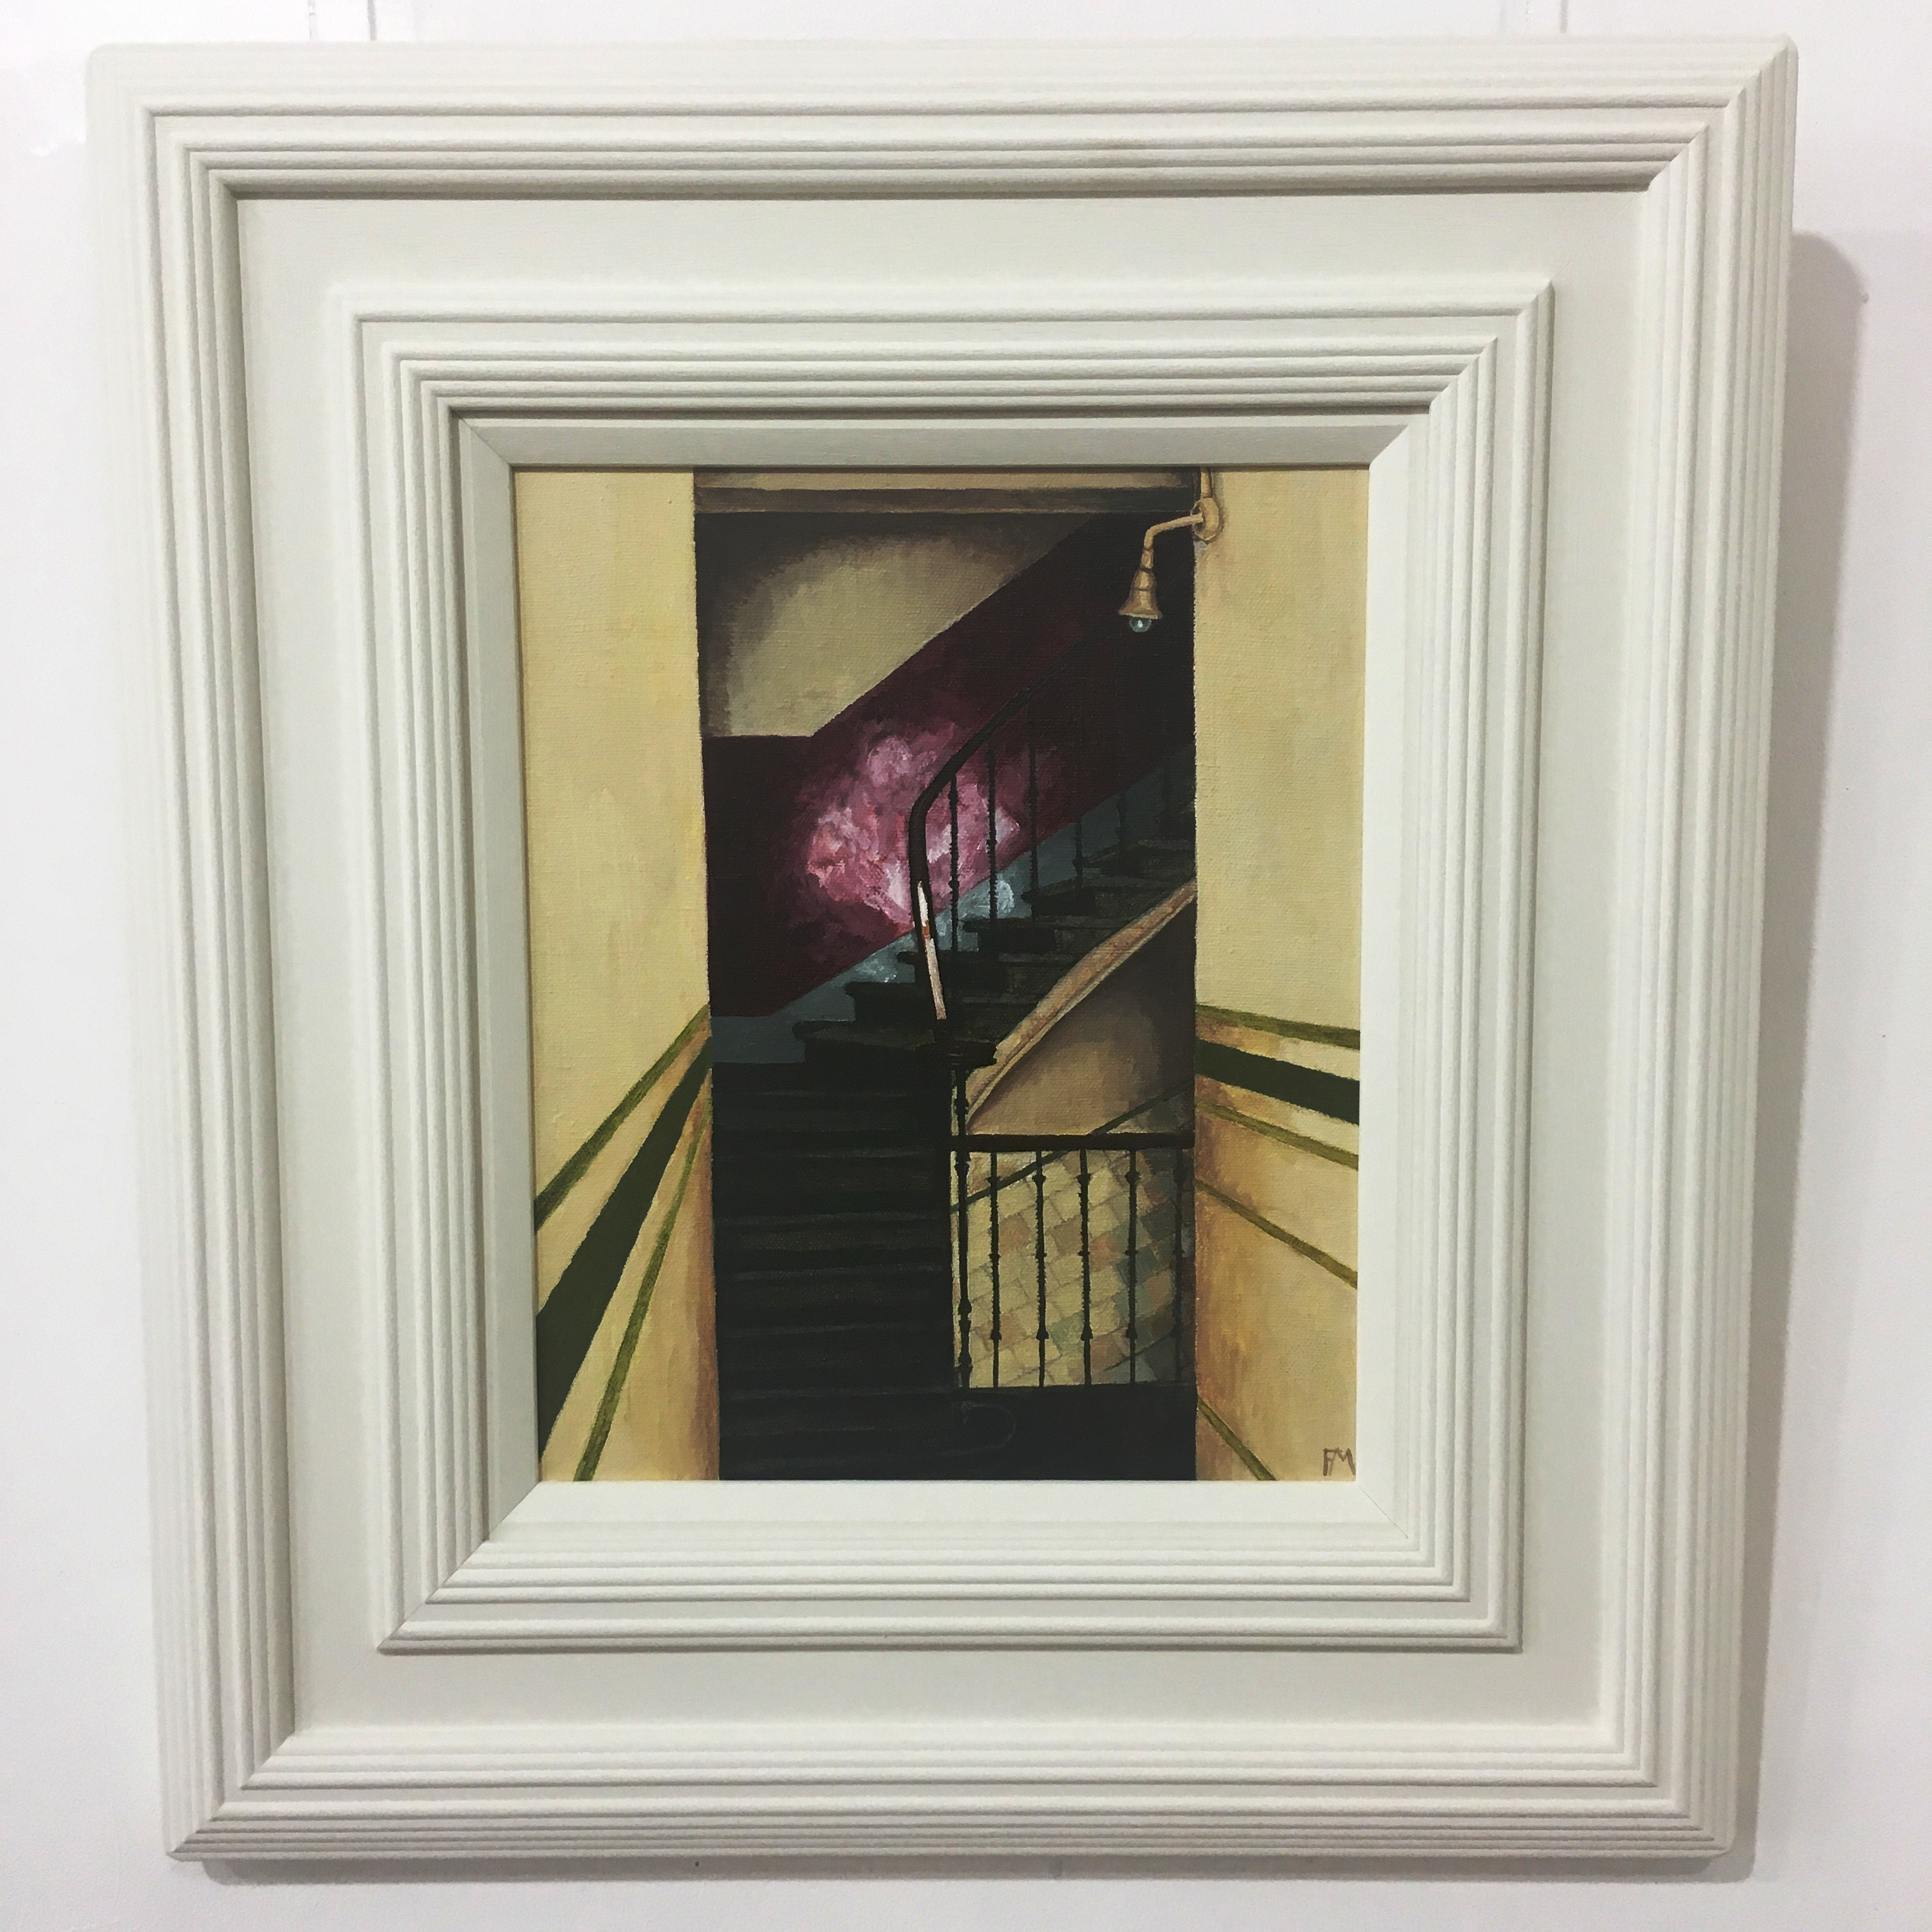 'Partick Red Close' by artist Frank McNab